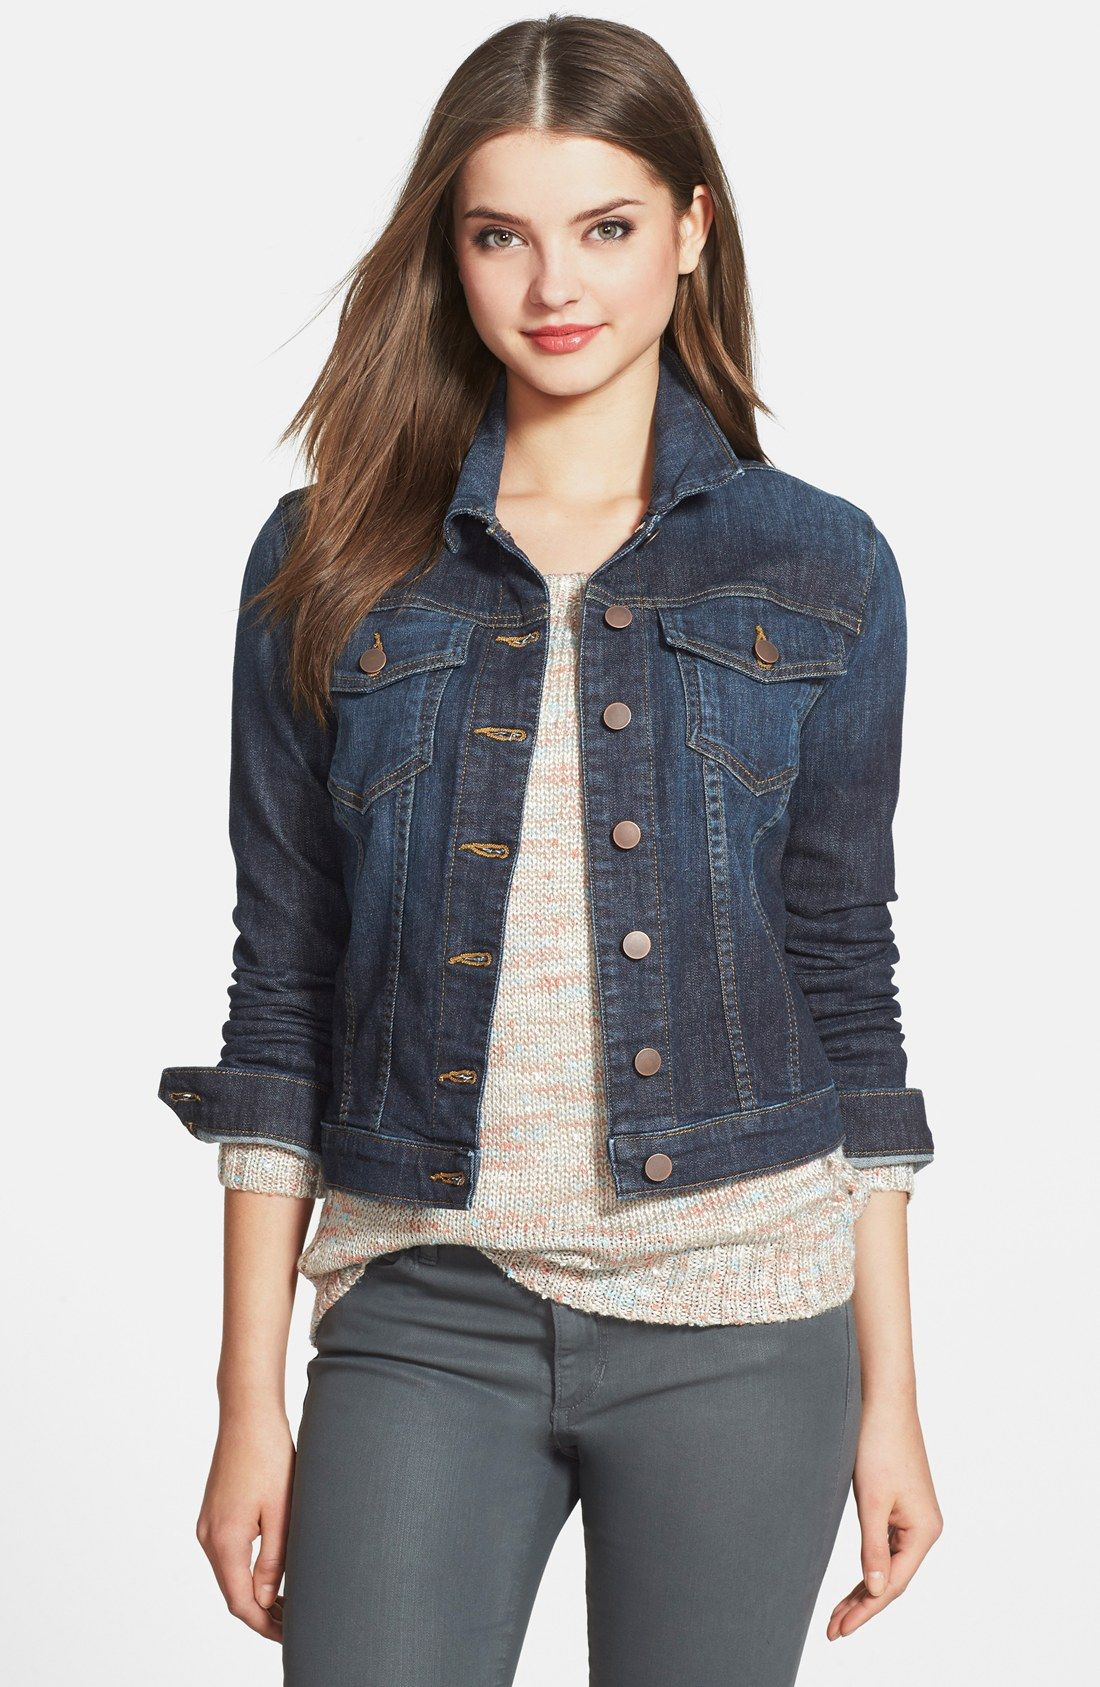 Creating Your Core Closet | Jackets for women, Blue jeans and Layering